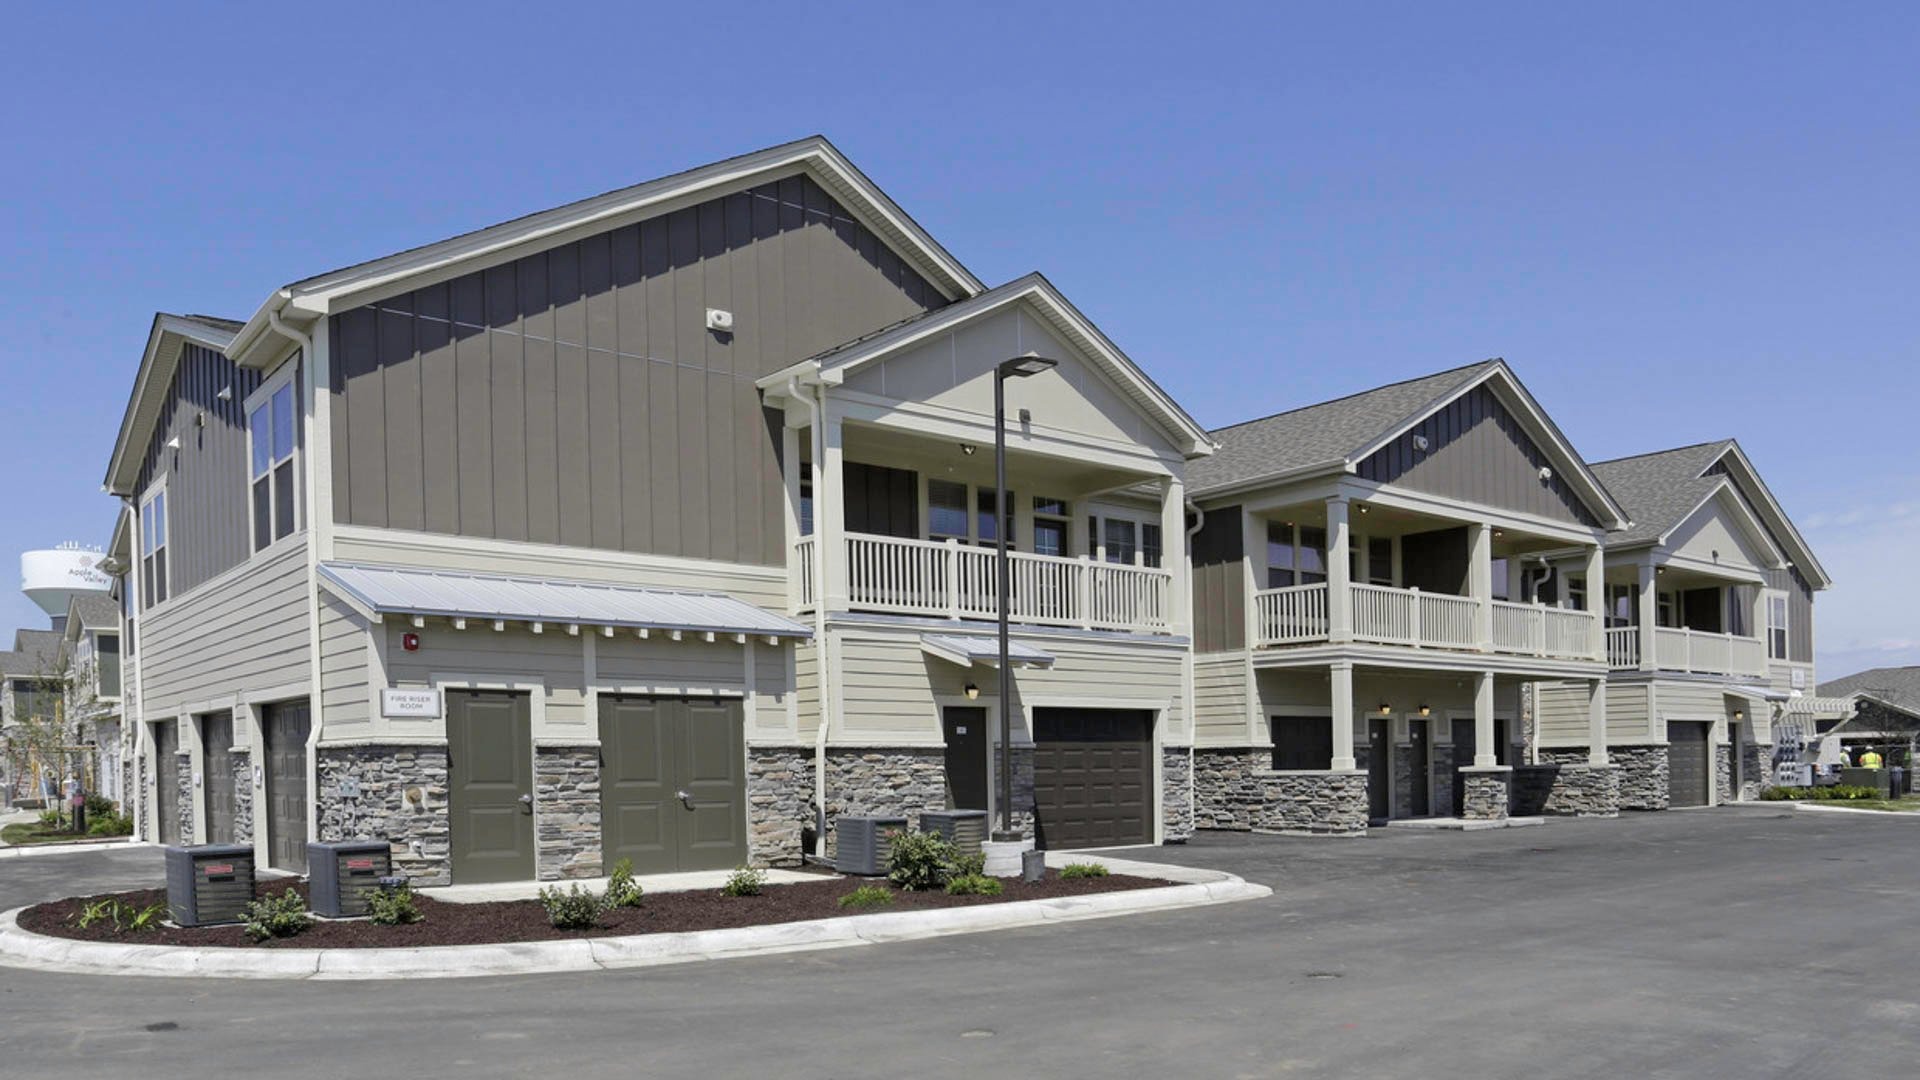 Springs at Cobblestone Lake apartment exterior with attached garages